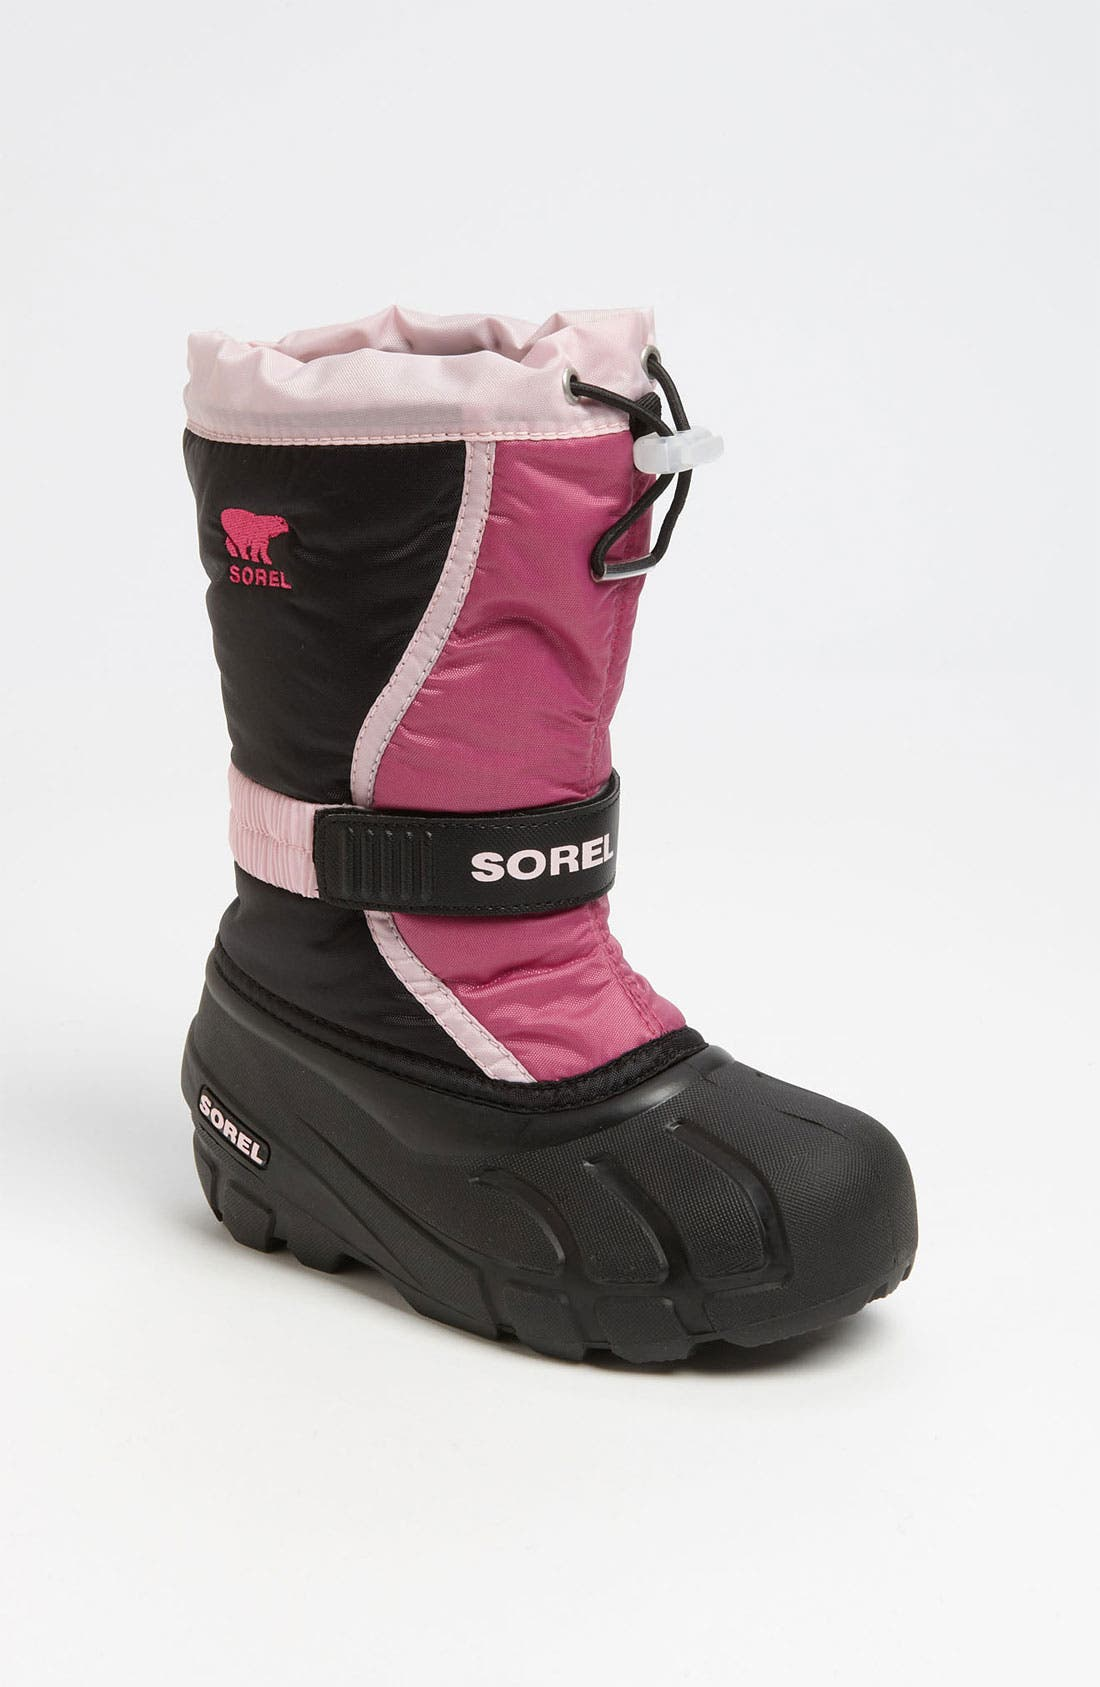 Main Image - Sorel 'Flurry' Boot (Toddler, Little Kid & Big Kid)